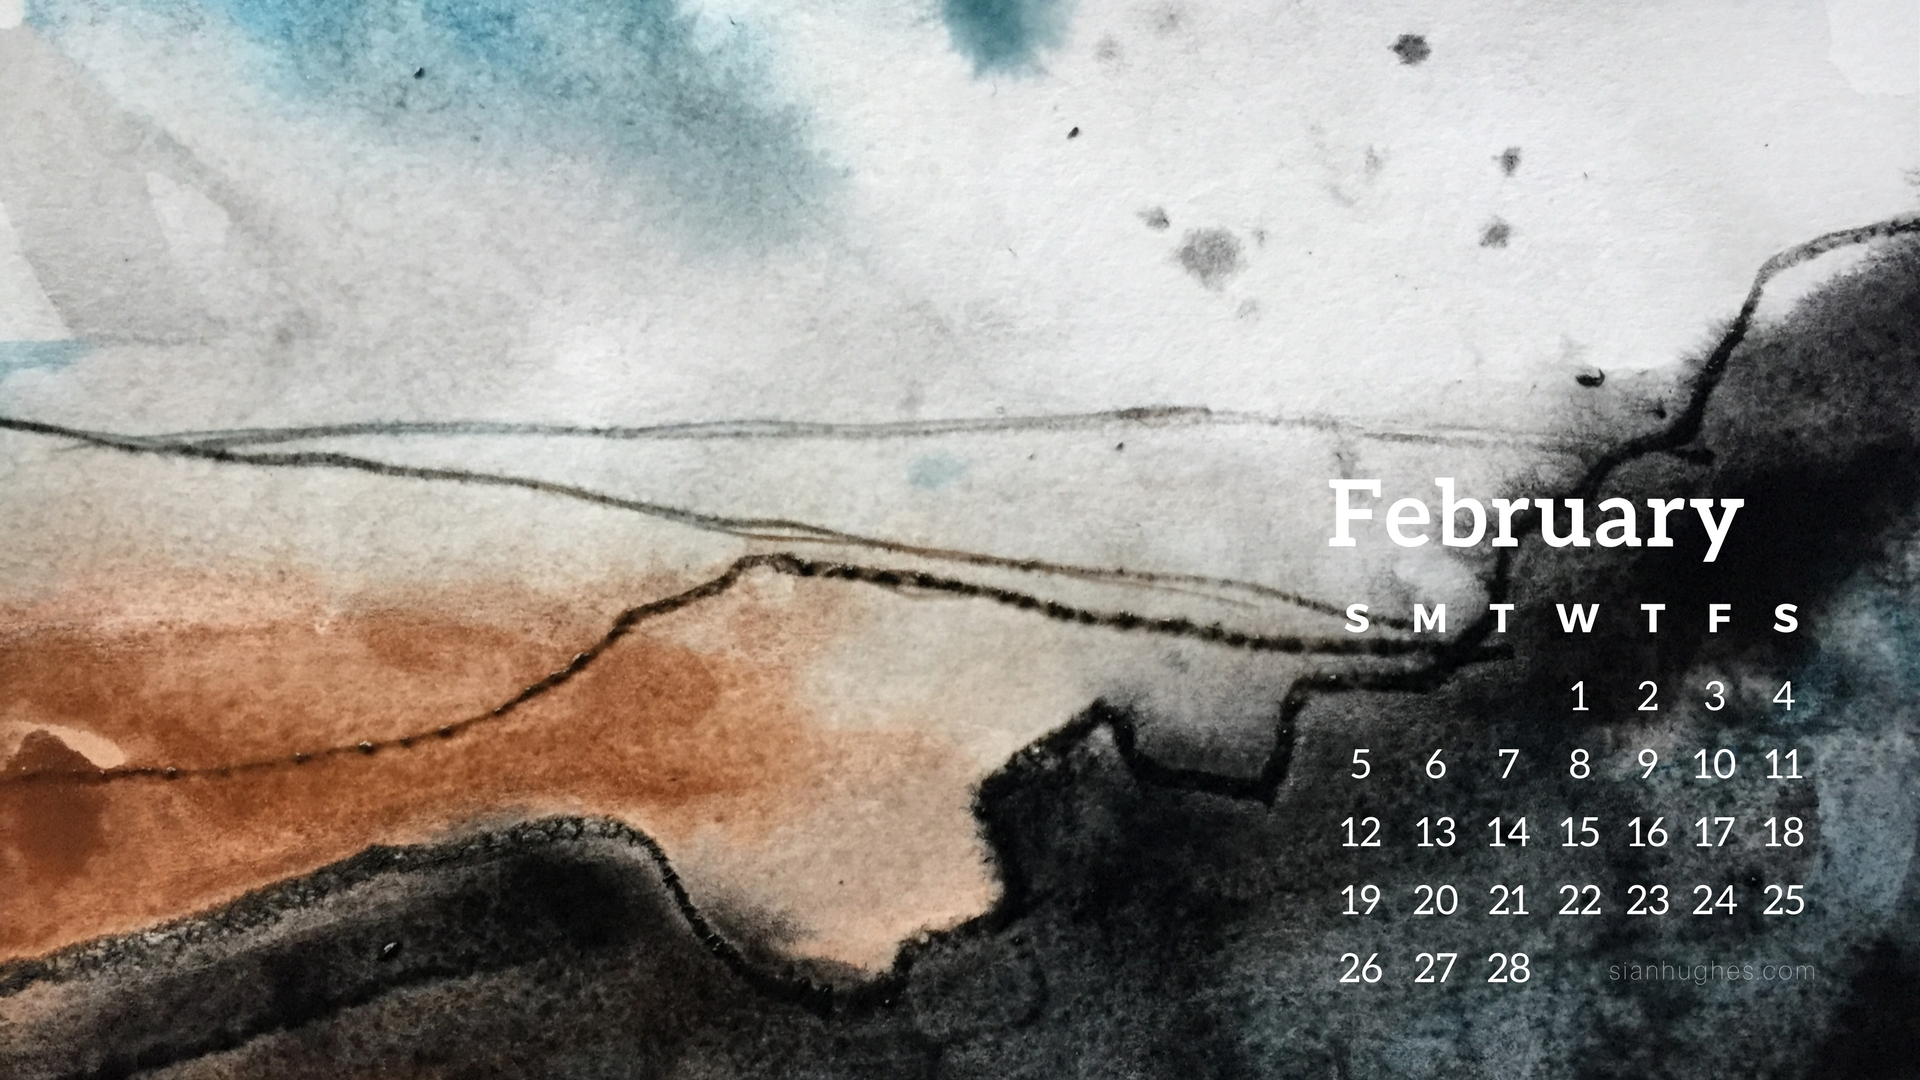 Peak District sketch February desktop wallpaper calendar, free download, by Sian Hughes